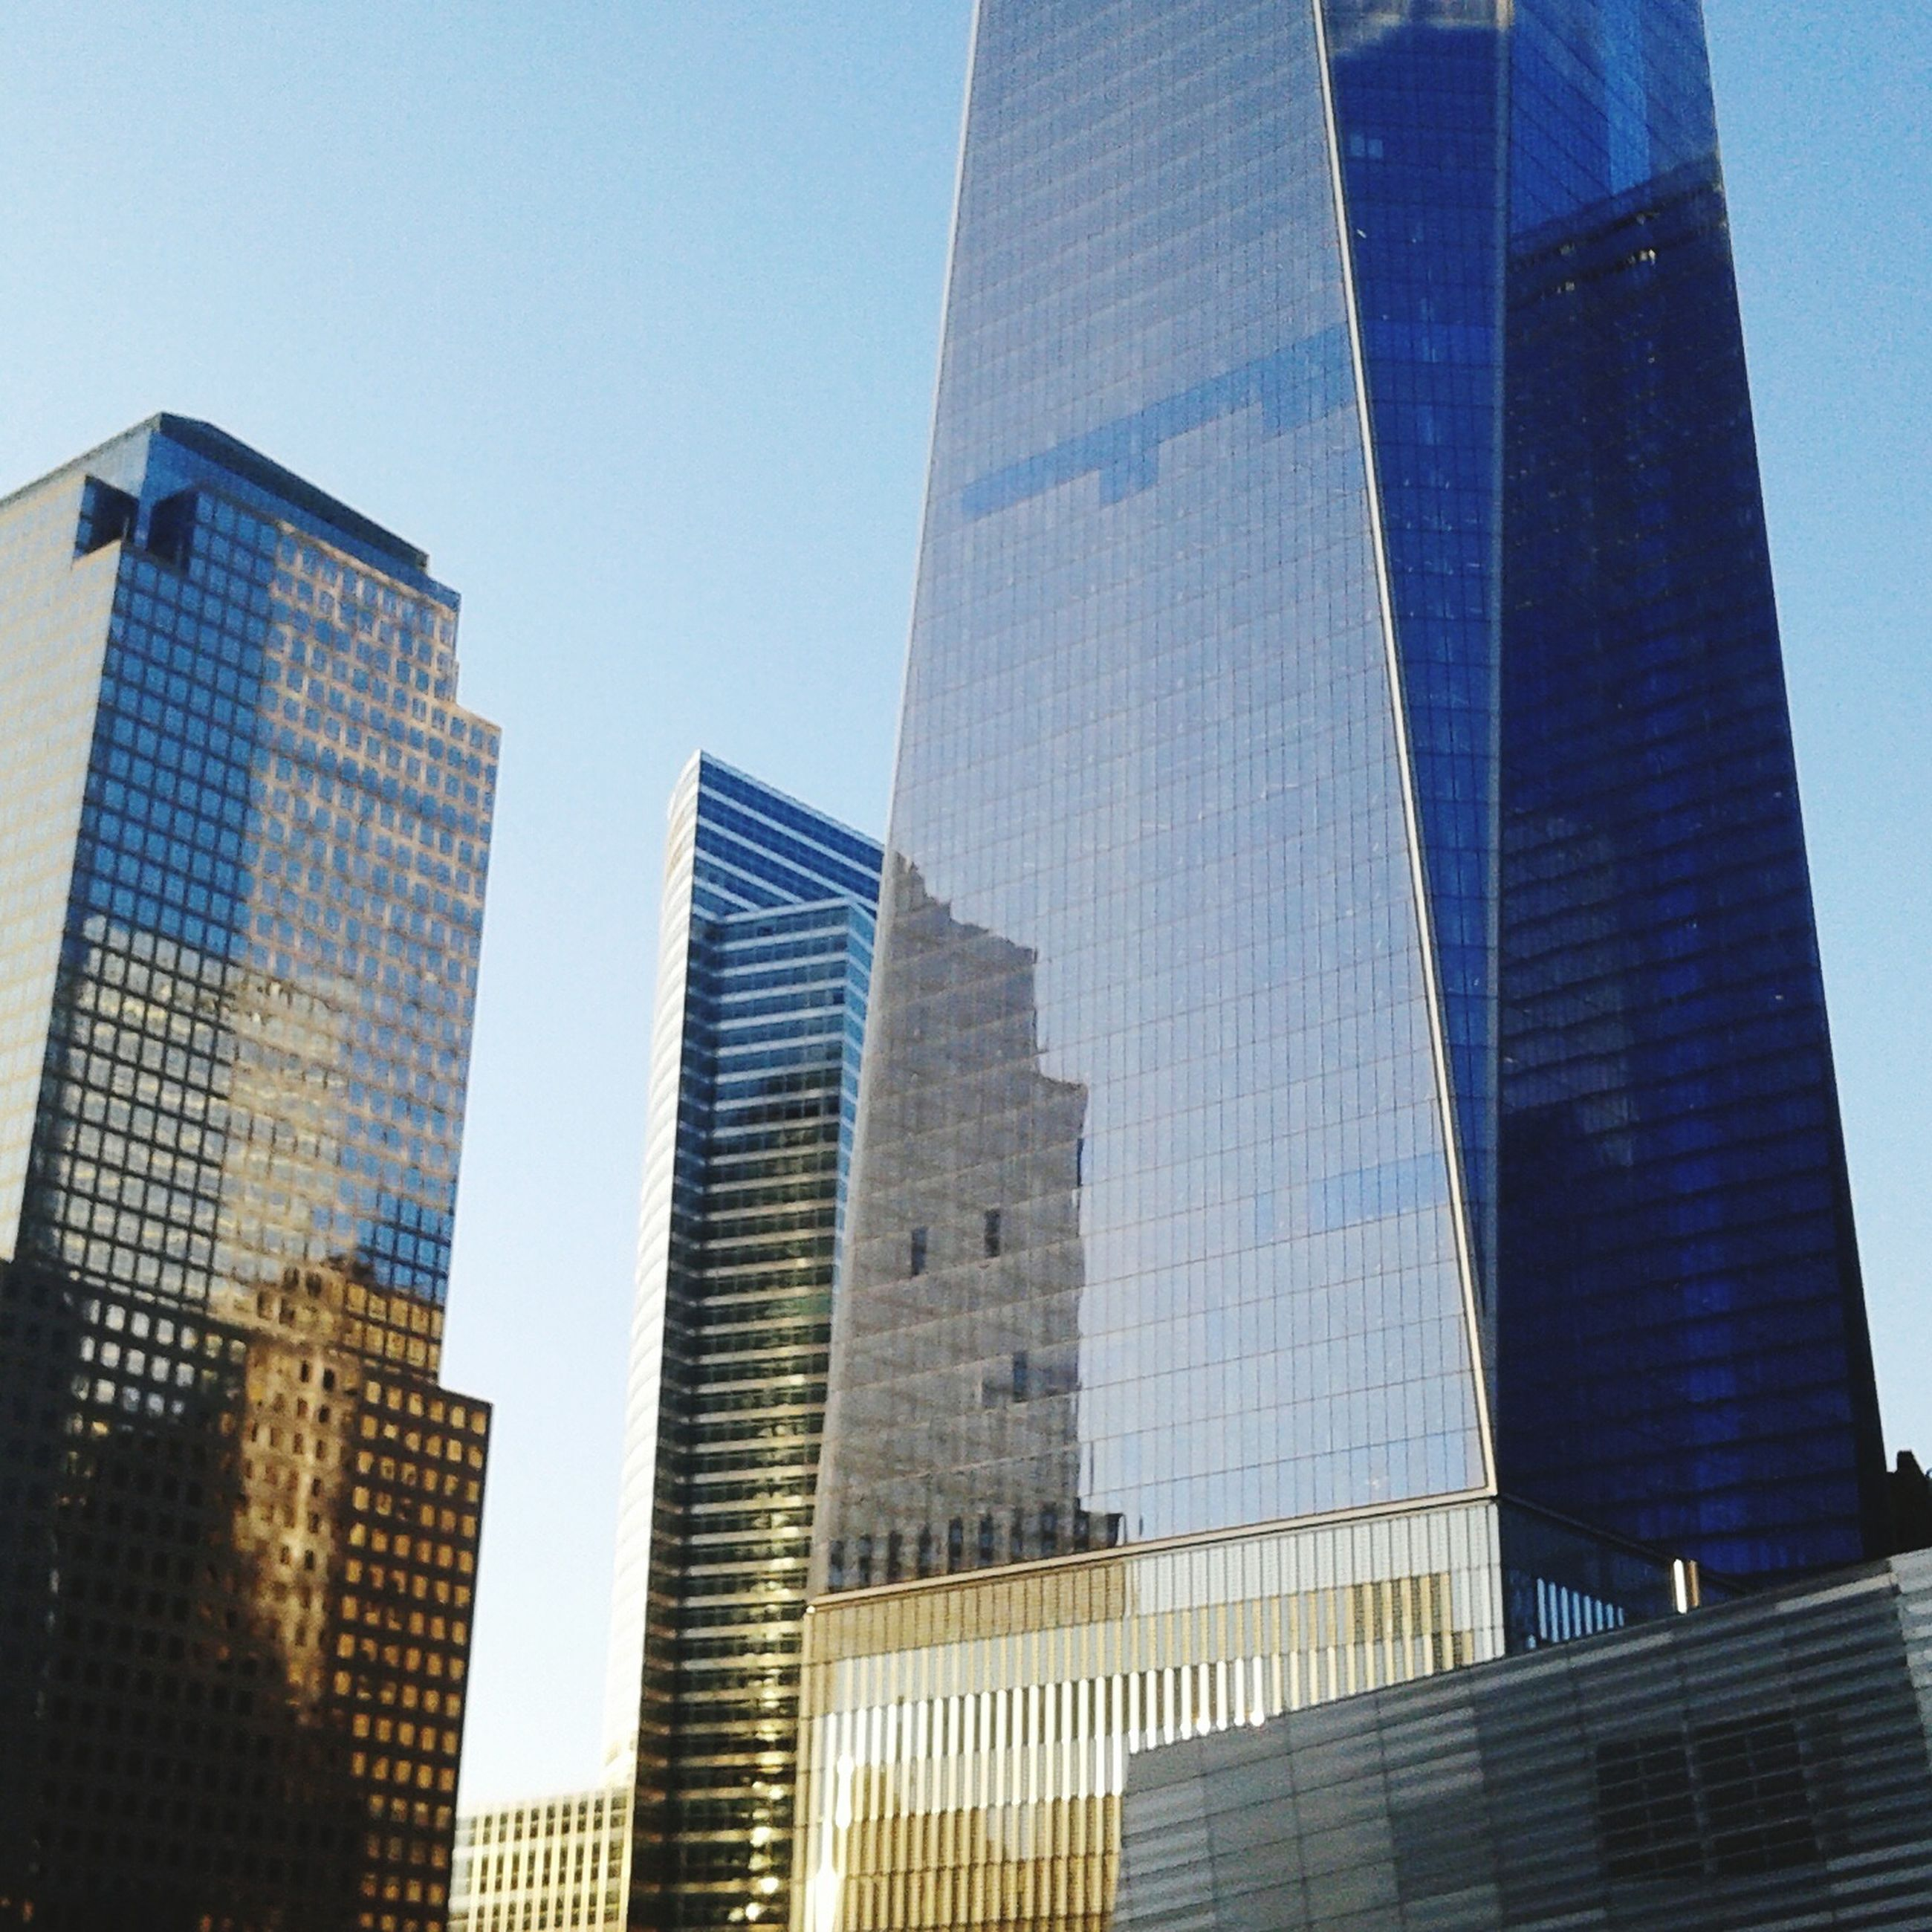 building exterior, architecture, built structure, skyscraper, city, modern, tall - high, office building, tower, low angle view, building, clear sky, glass - material, financial district, tall, sky, city life, urban skyline, capital cities, reflection